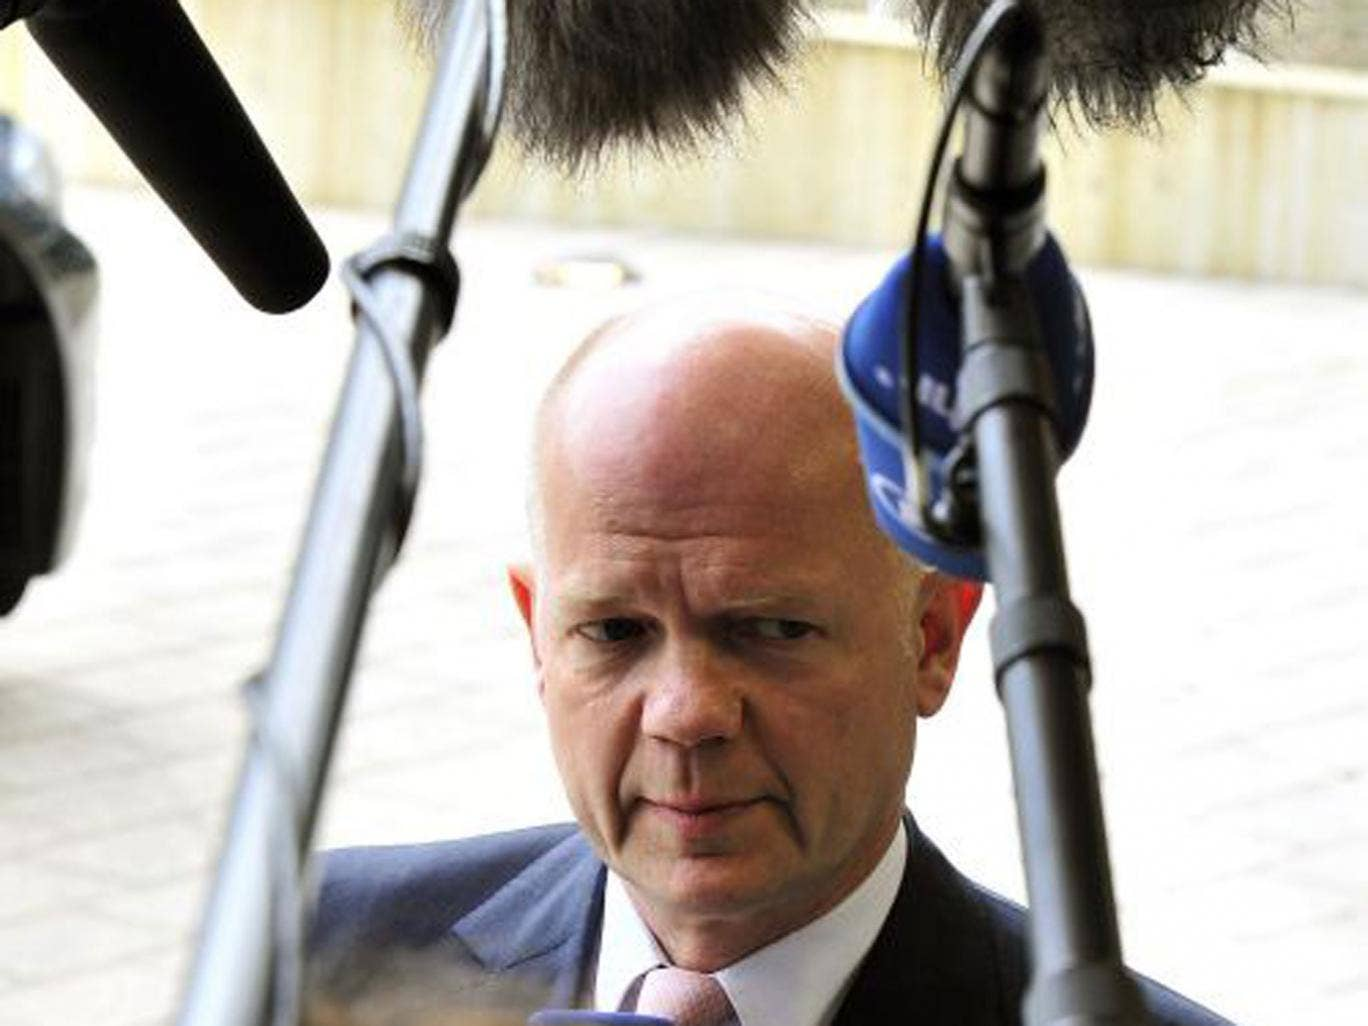 The Foreign Secretary William Hague says Russia is behind the unrest in eastern Ukraine